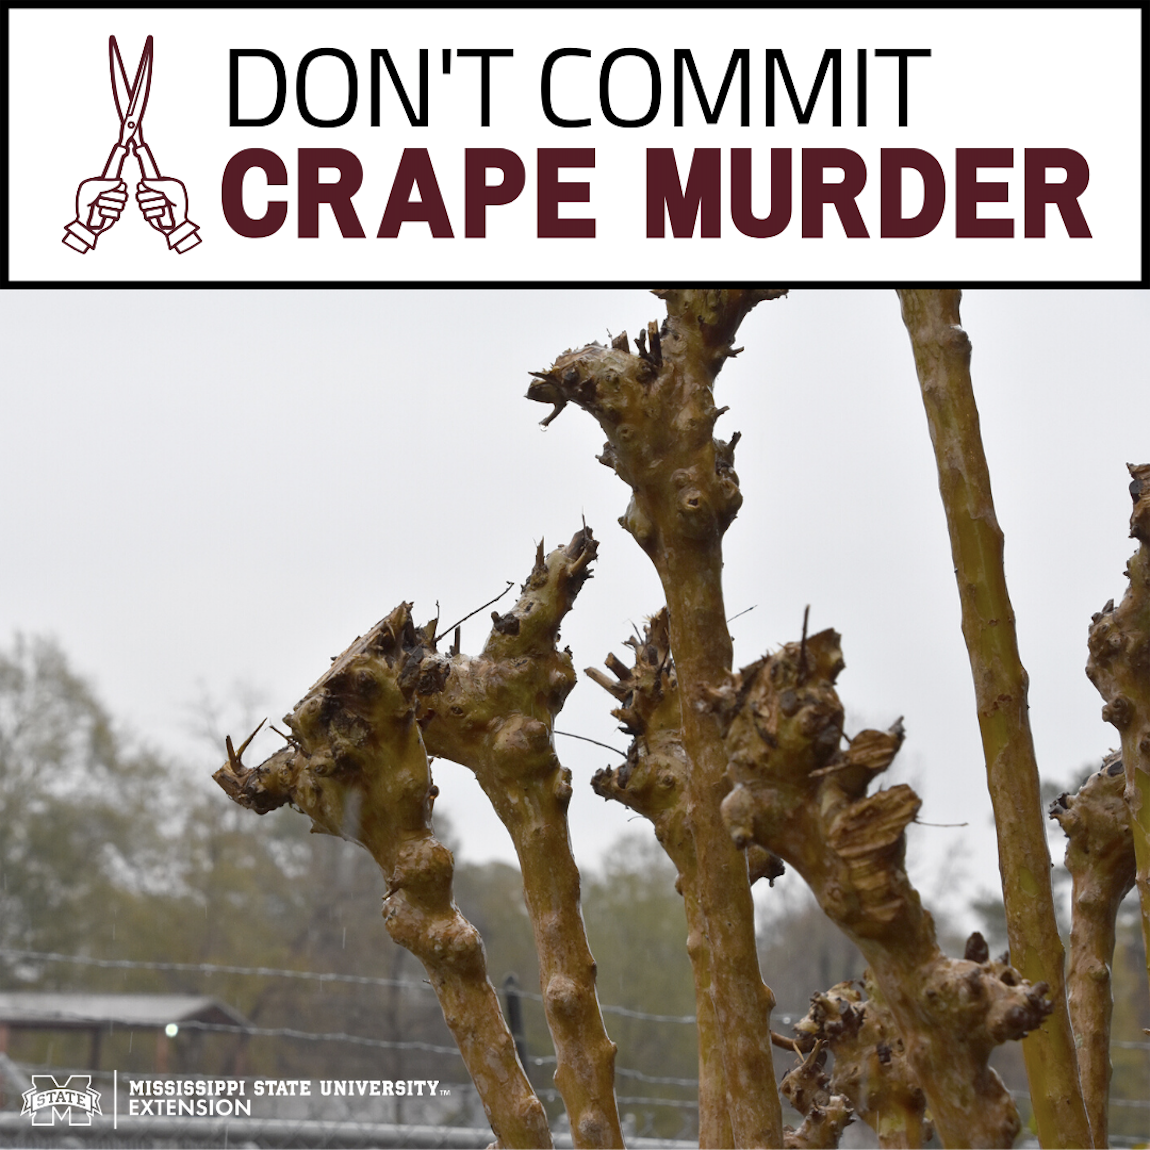 Don't Commit Crape Murder infographic.